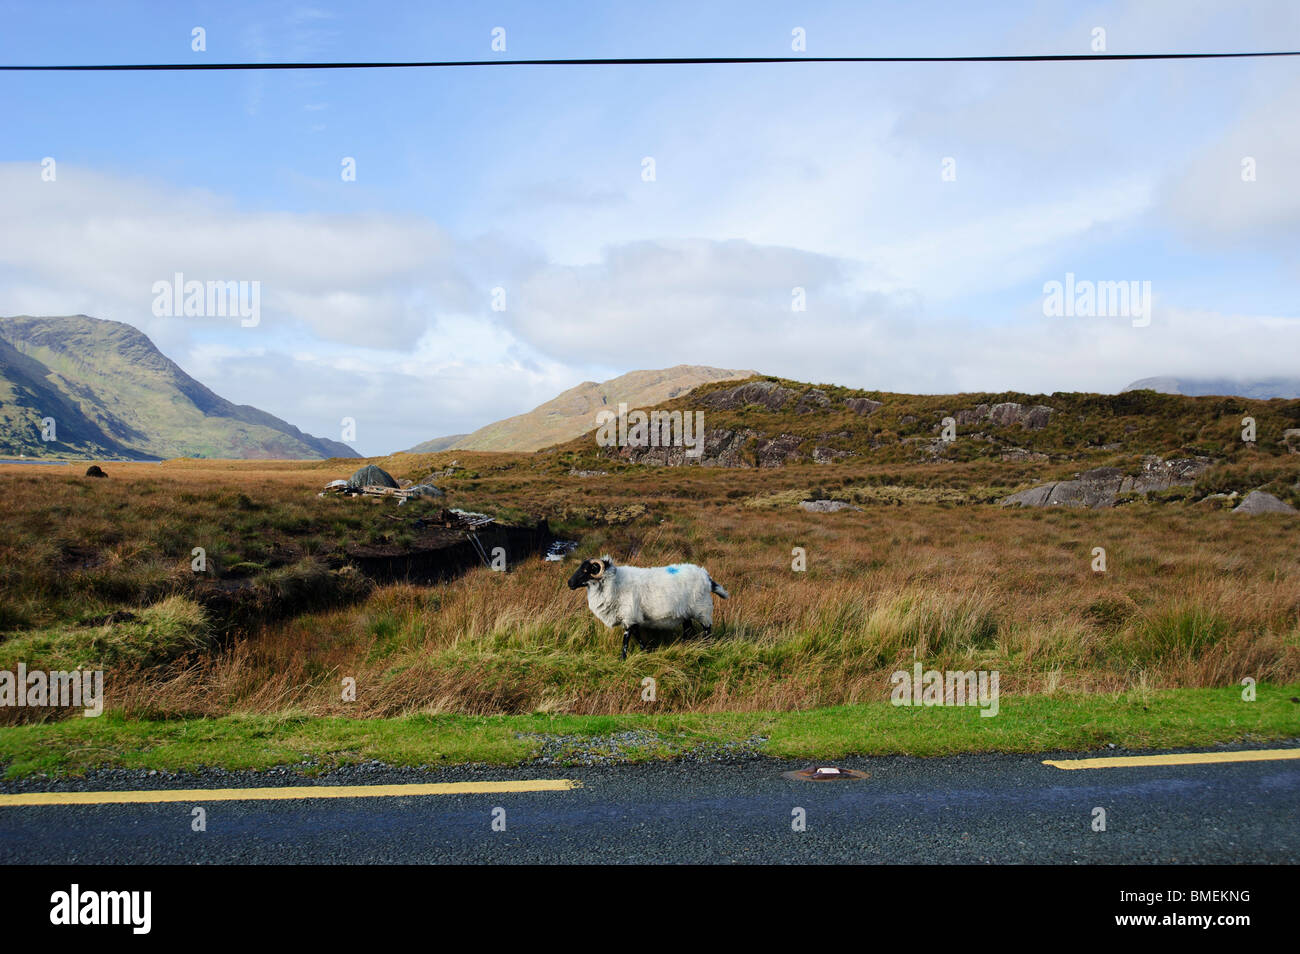 N59, County Galway, Province of Connacht, Ireland - Stock Image